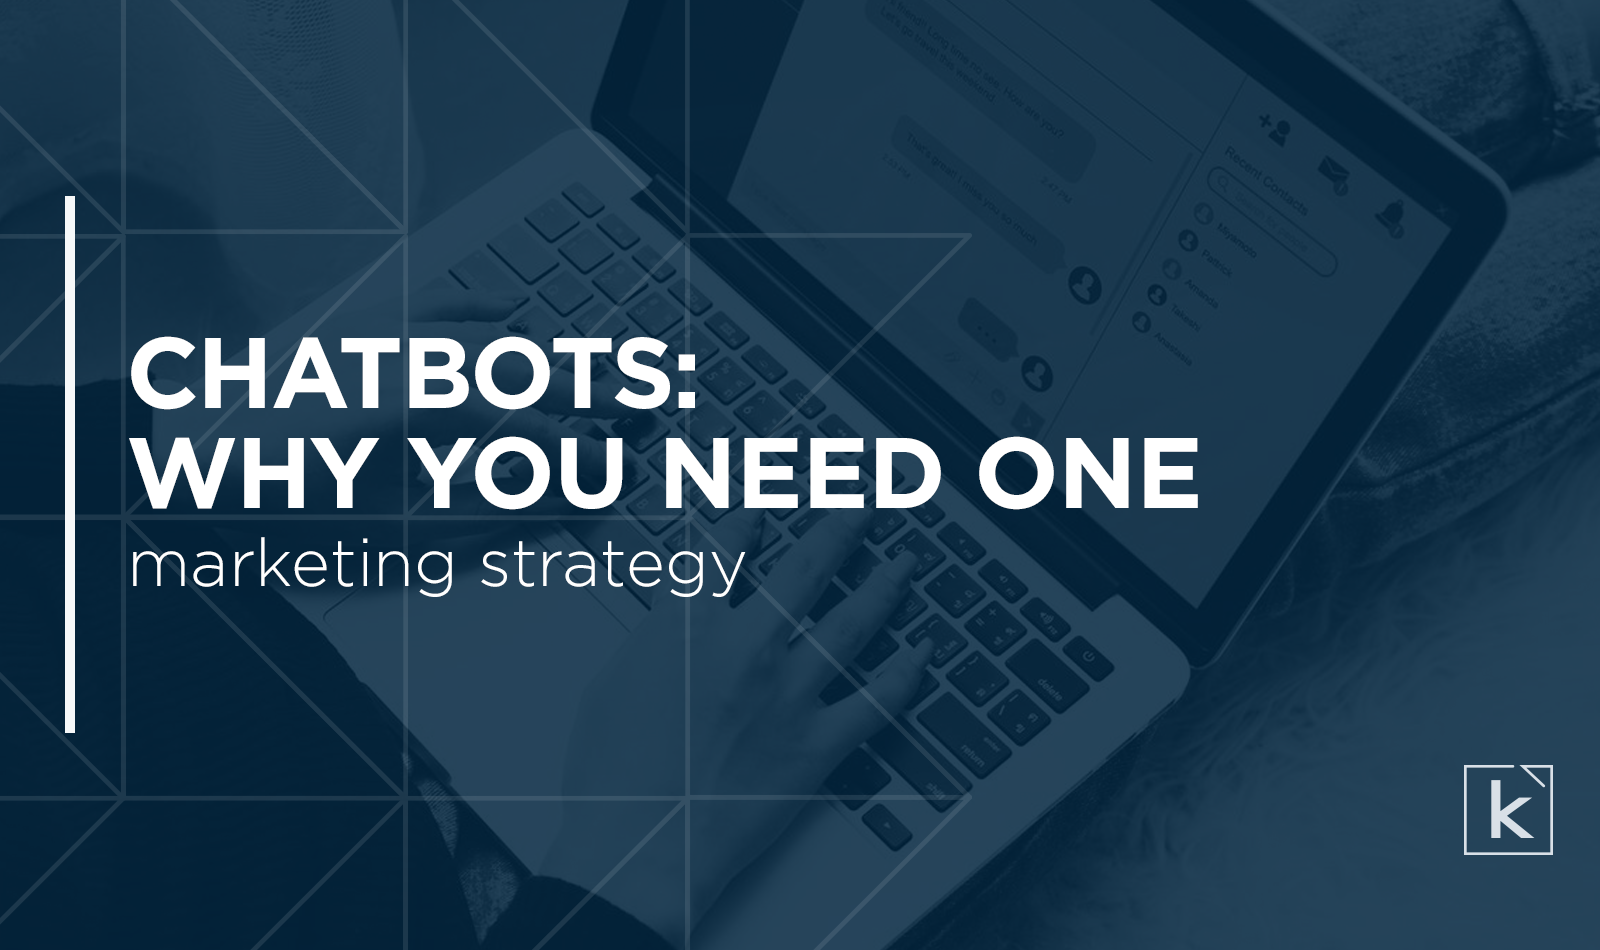 chatbots-why-you-need-one-person-on-computer-chat